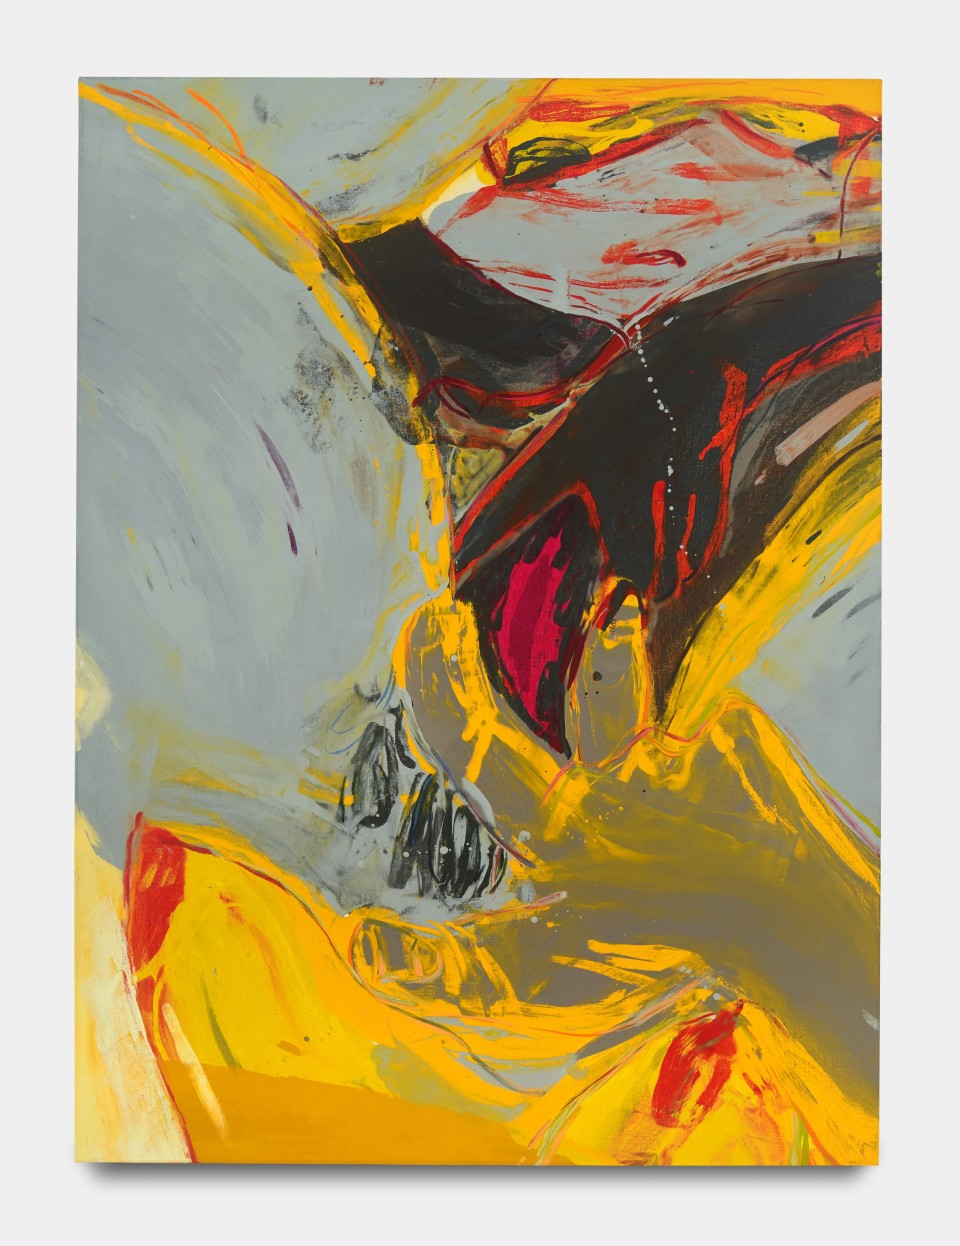 Image: Sarah Faux  Where there is half, there should be double, 2020  signed and dated verso  oil on canvas  62 x 46 inches